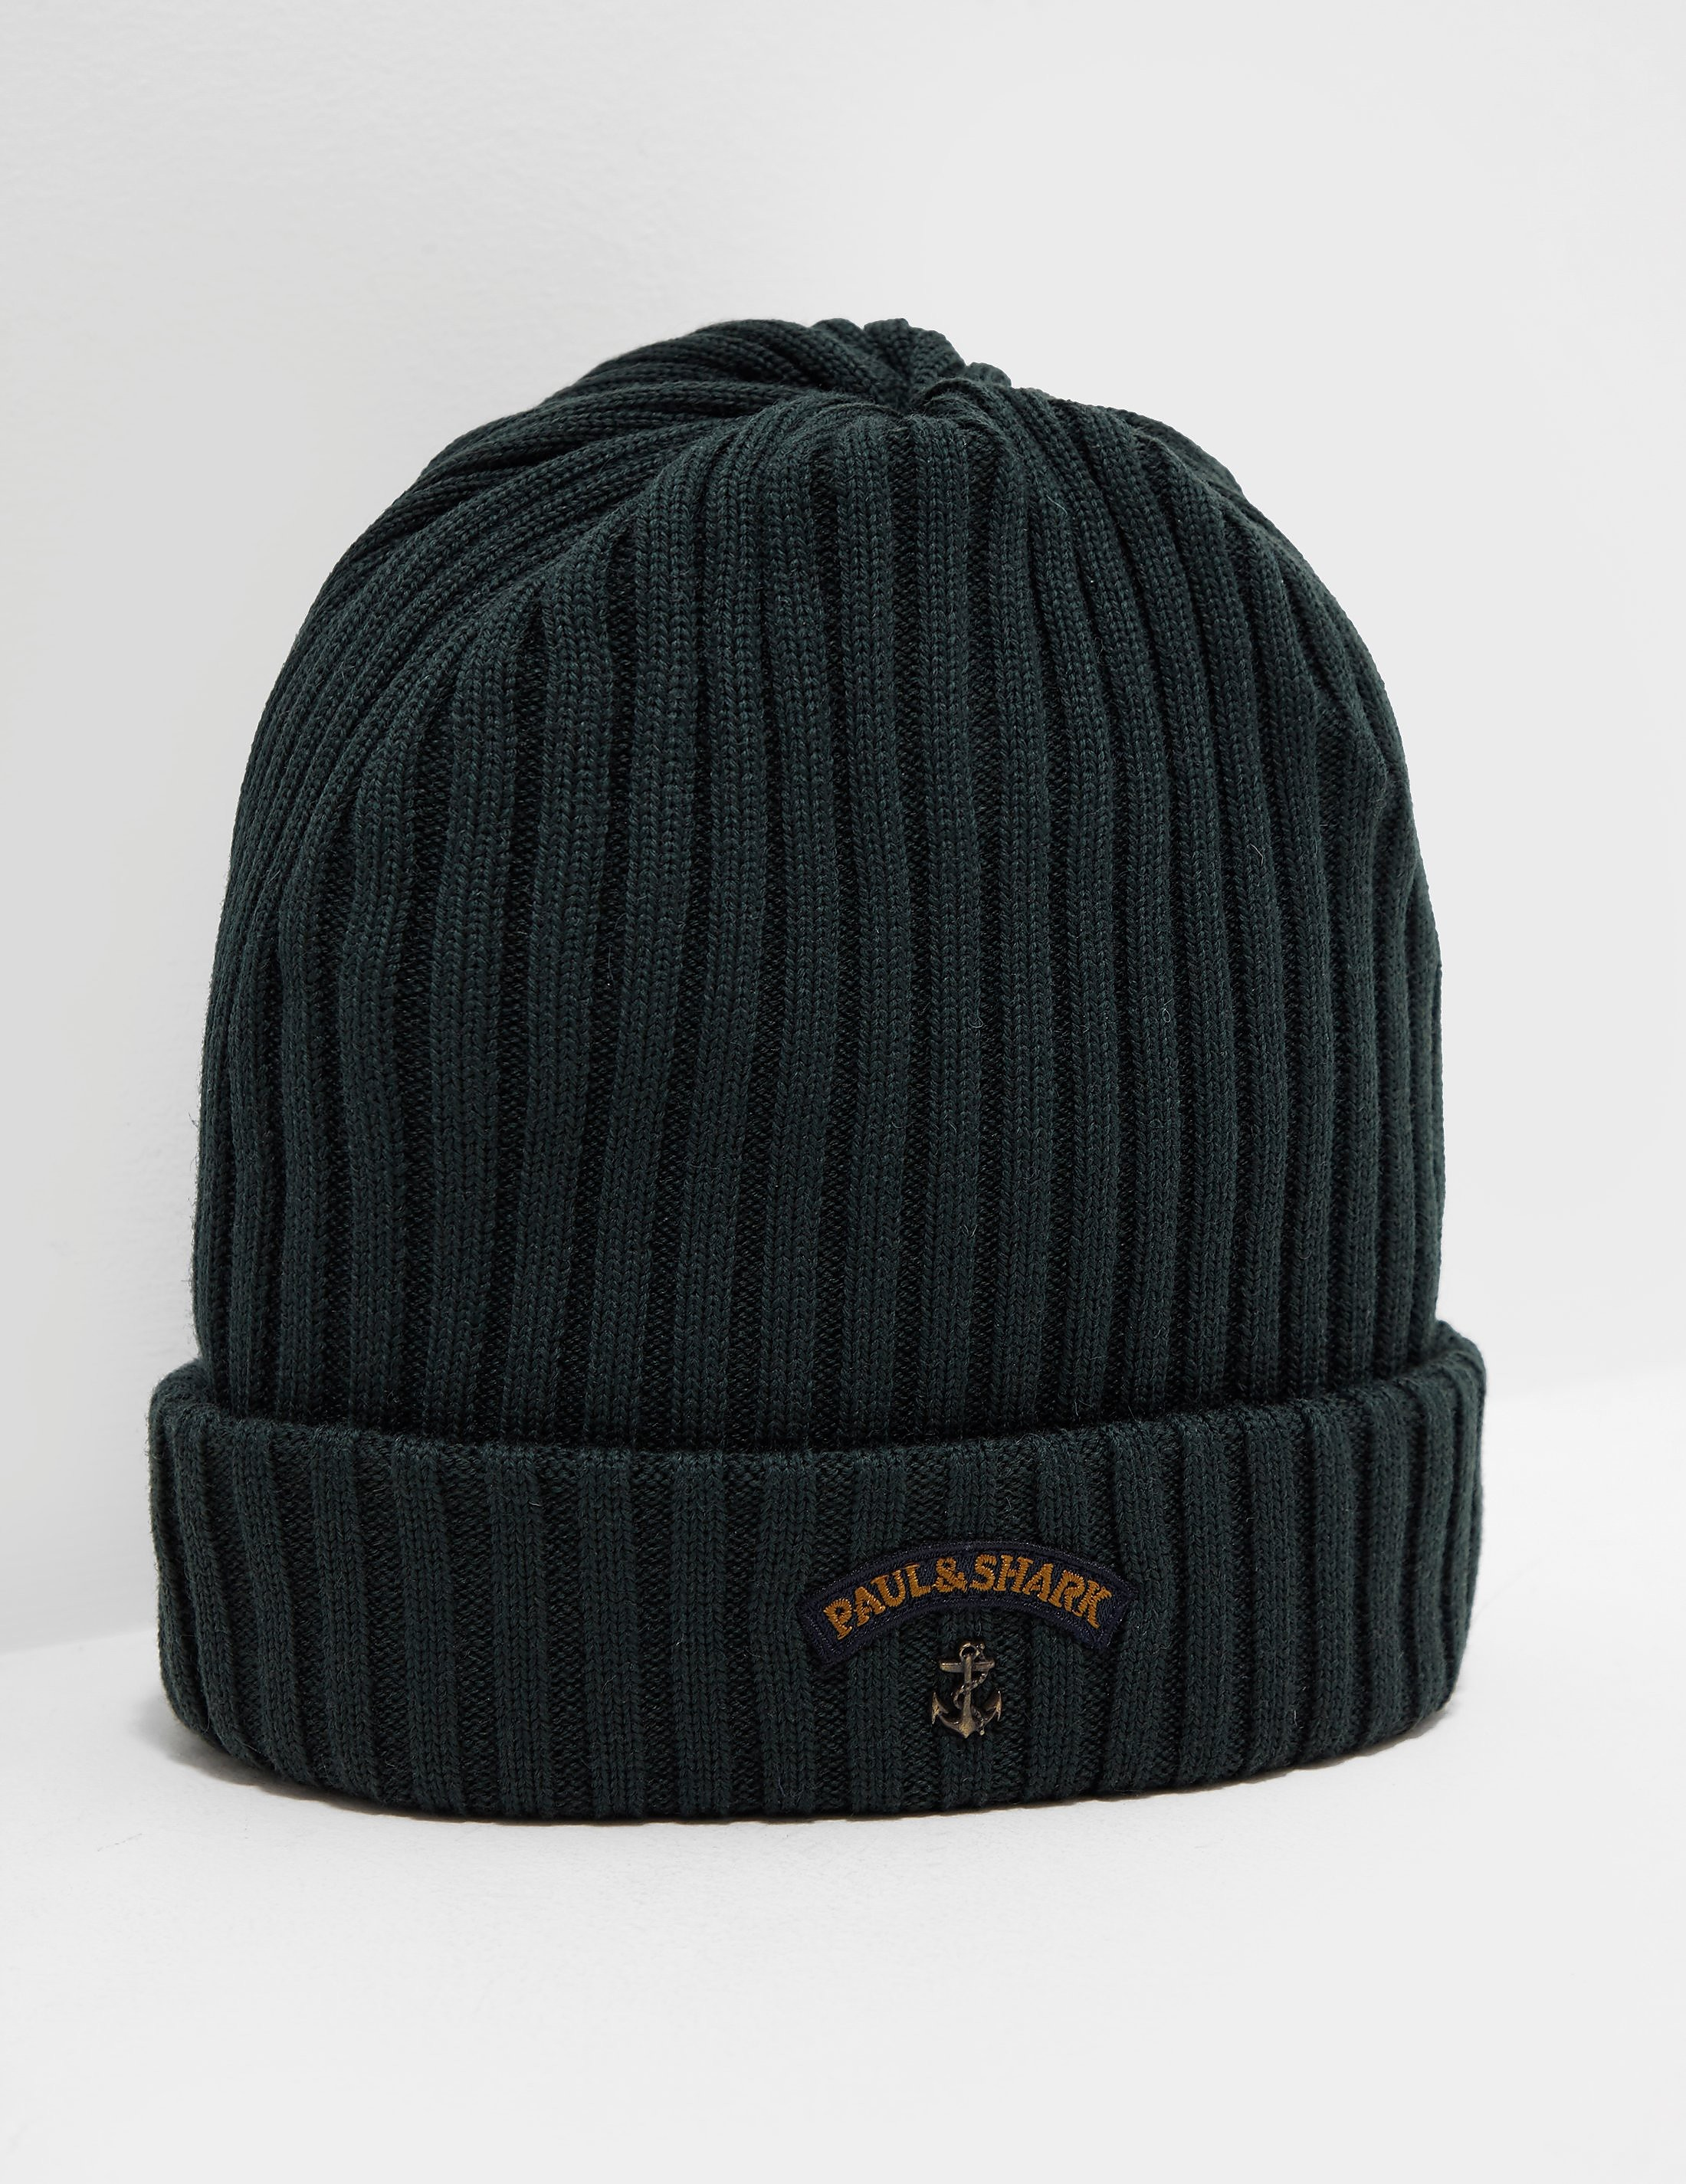 Paul and Shark Ribbed Beanie - Exclusive